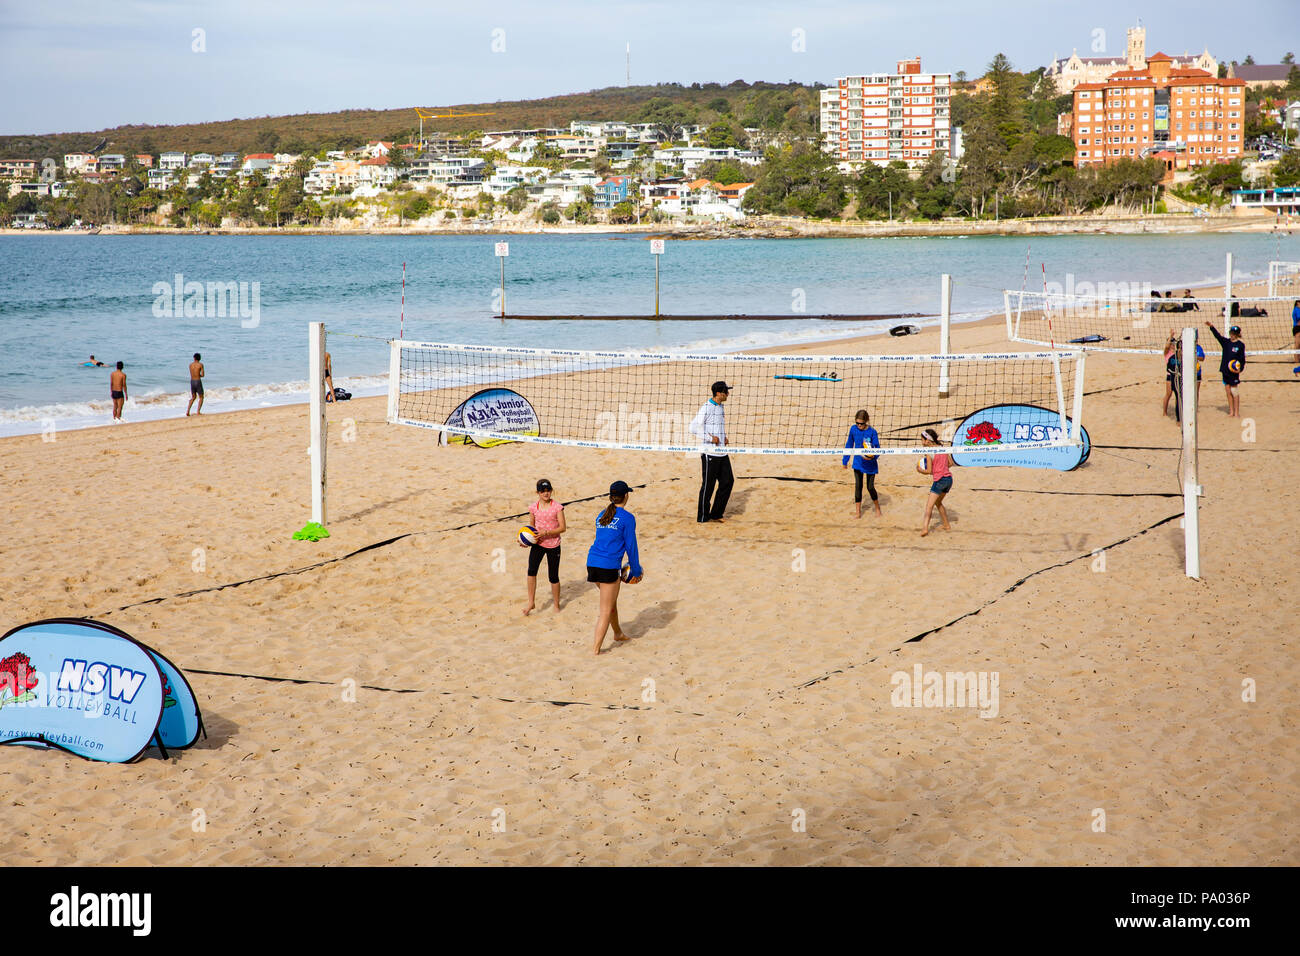 Children learning beach volleyball during school holidays on Manly beach in Sydney,Australia - Stock Image